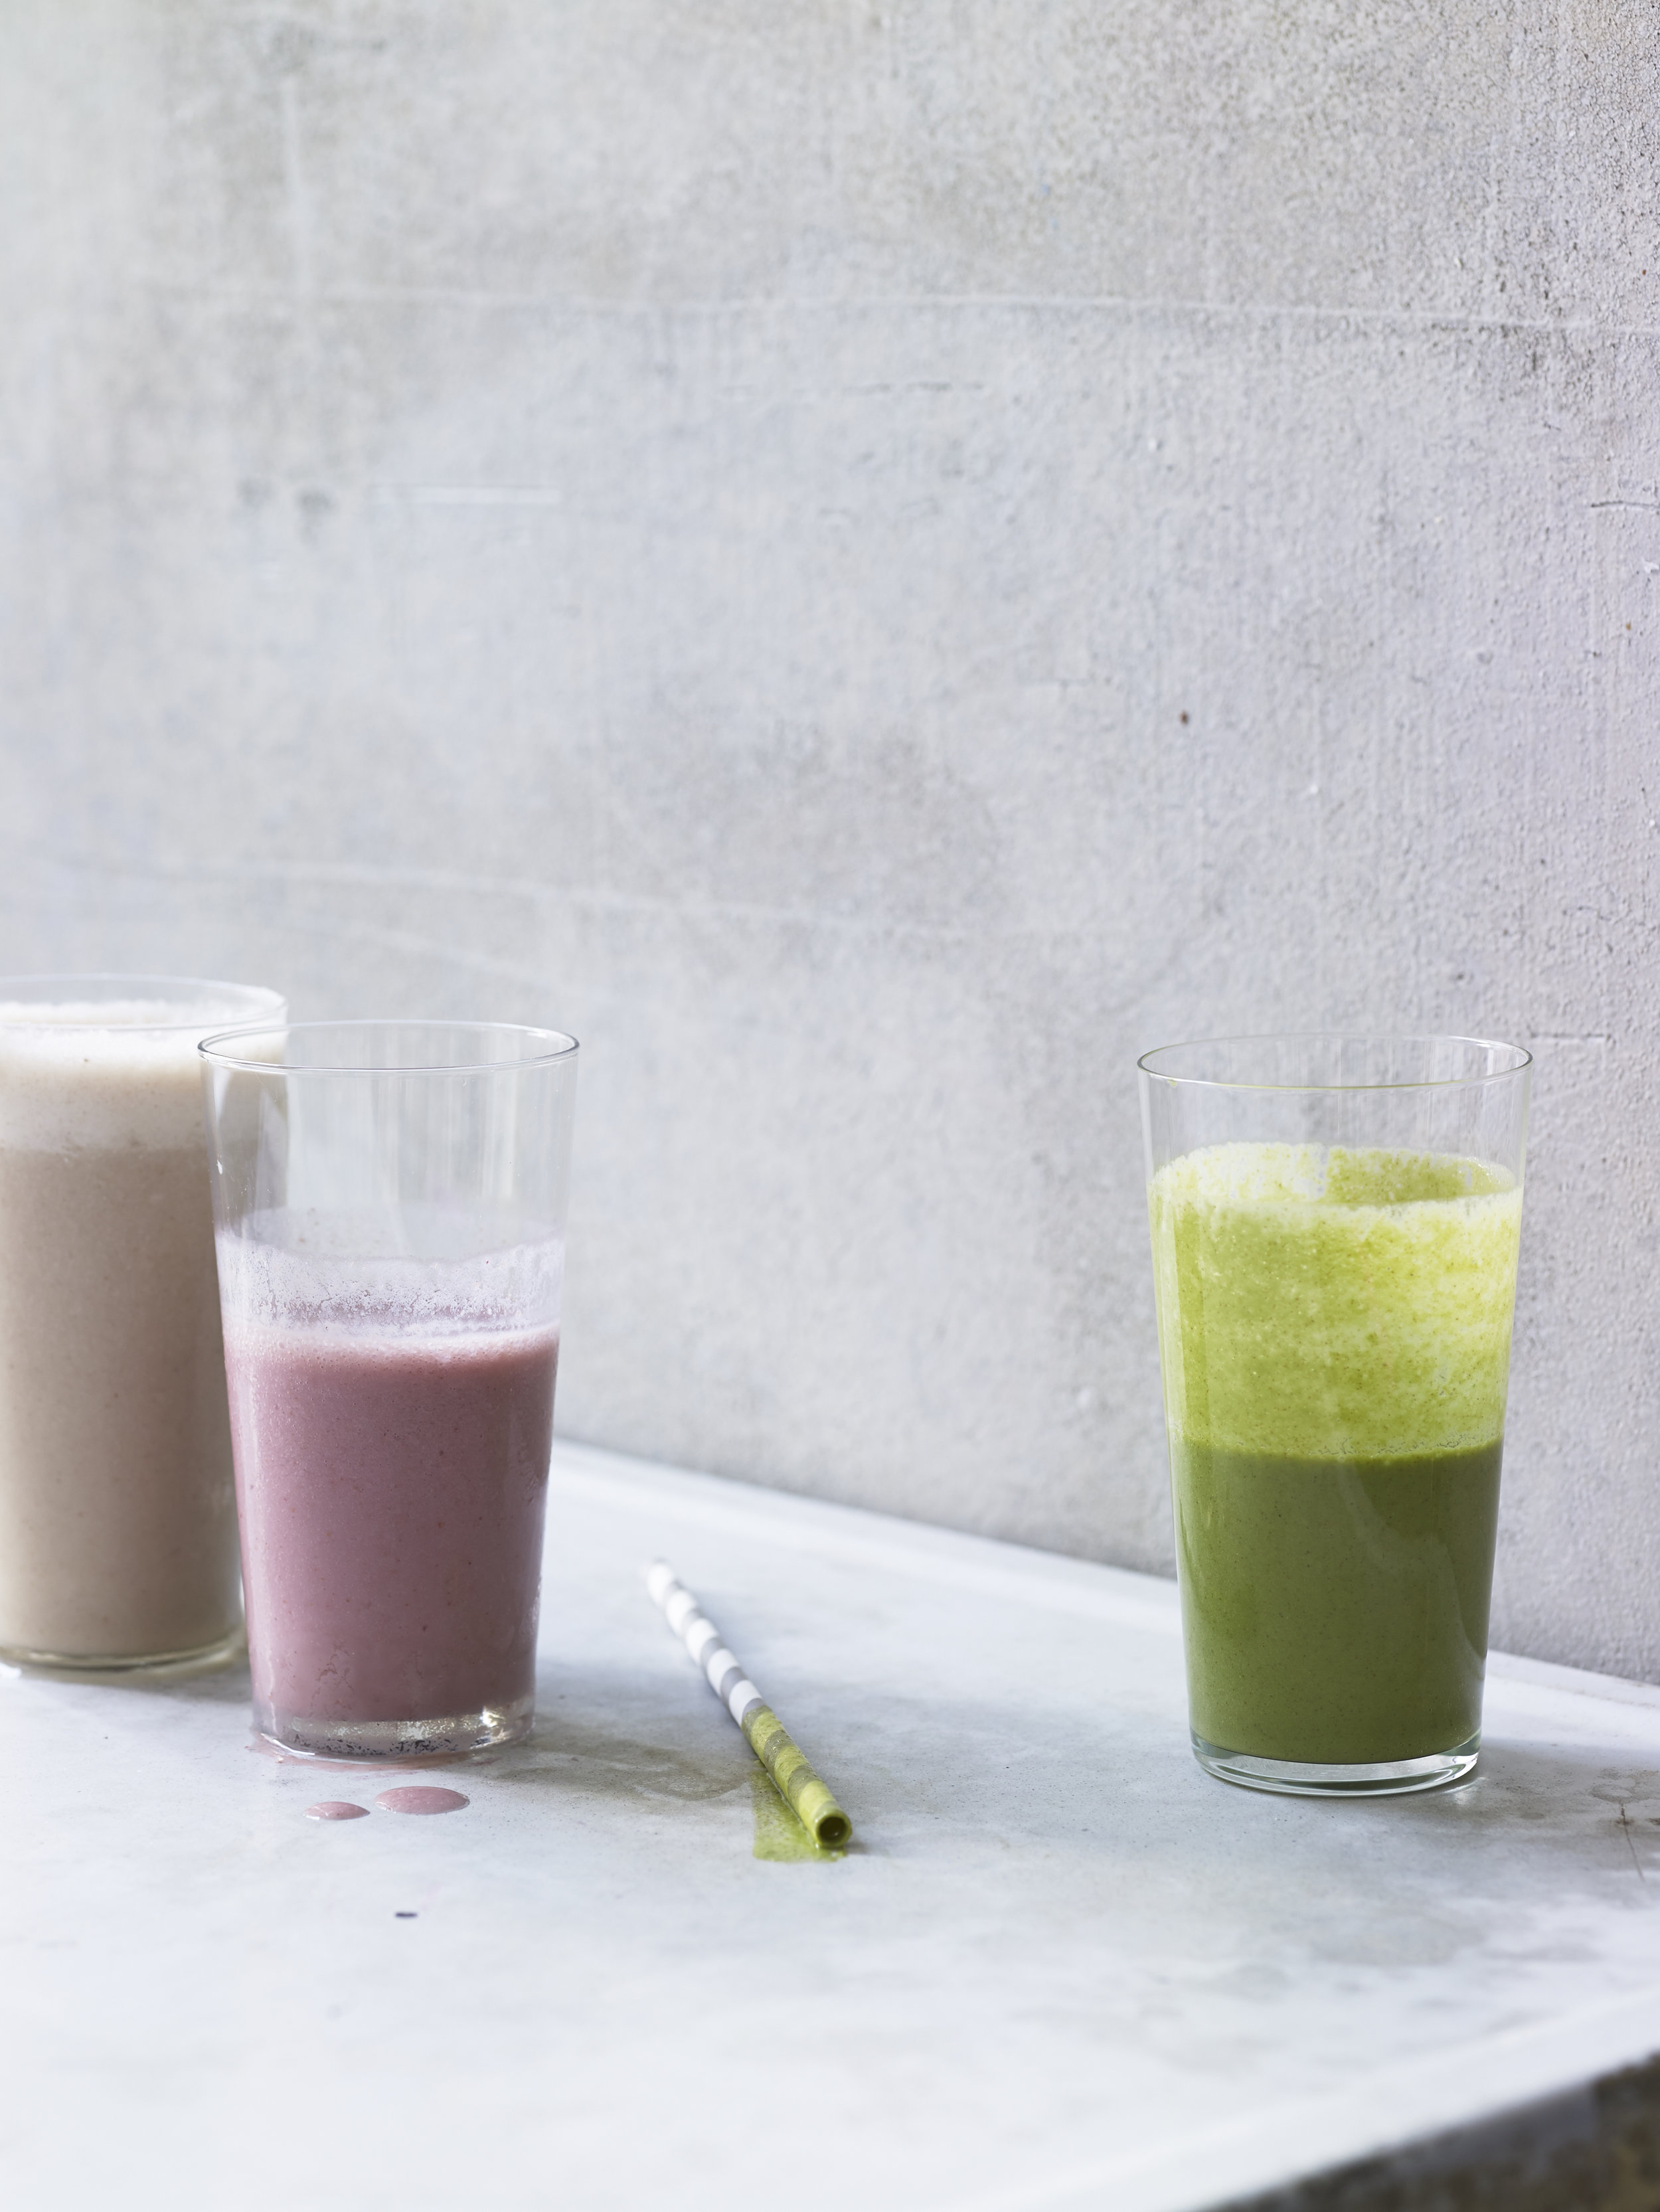 Drnk_GrnProtein_CinToast_RoseBerry_Smoothie_0135.jpg